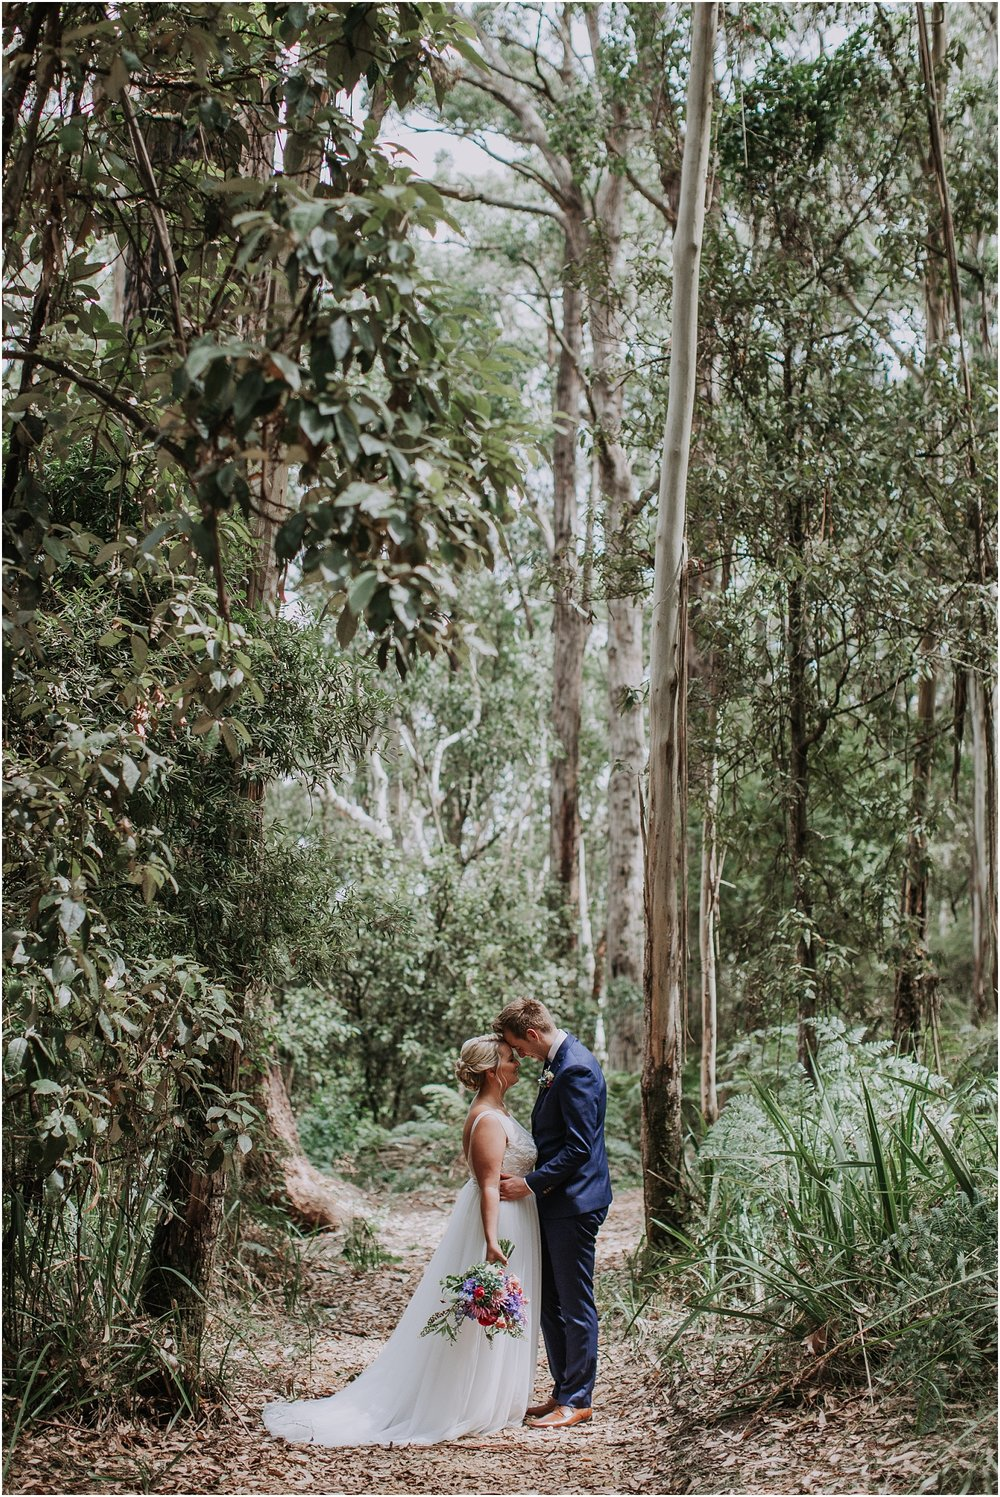 Ainslee and Warwick's elopement at Erskin Falls and the Lorne Beach Pavilion on the Great Ocean Road._0033.jpg